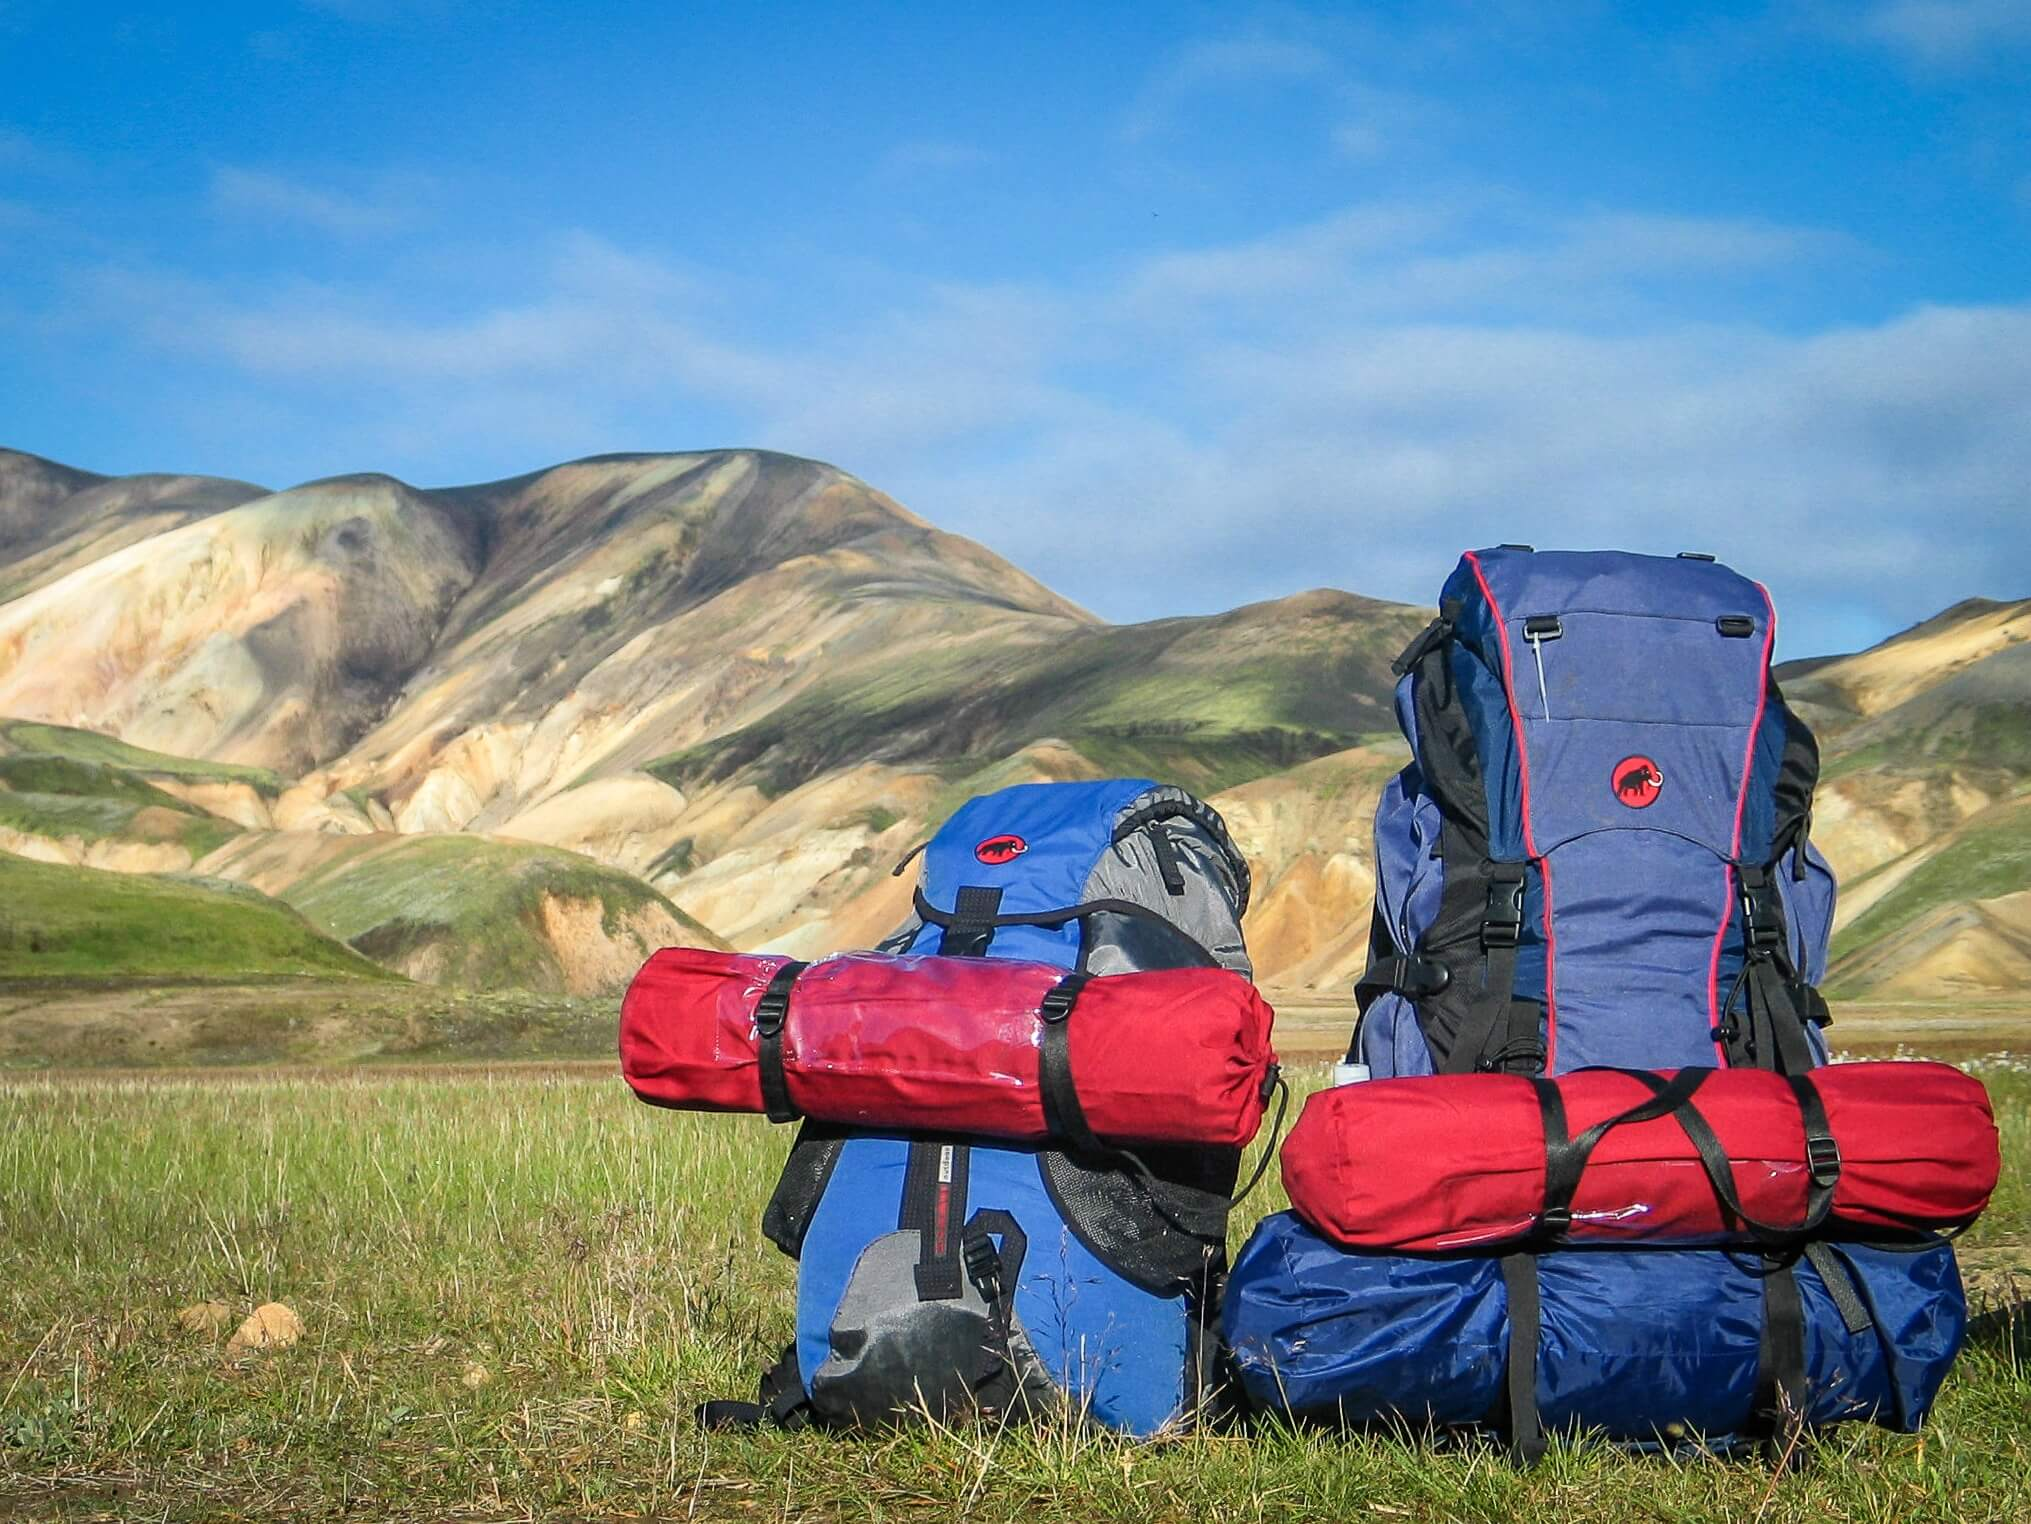 Two travel backpacks in a field.